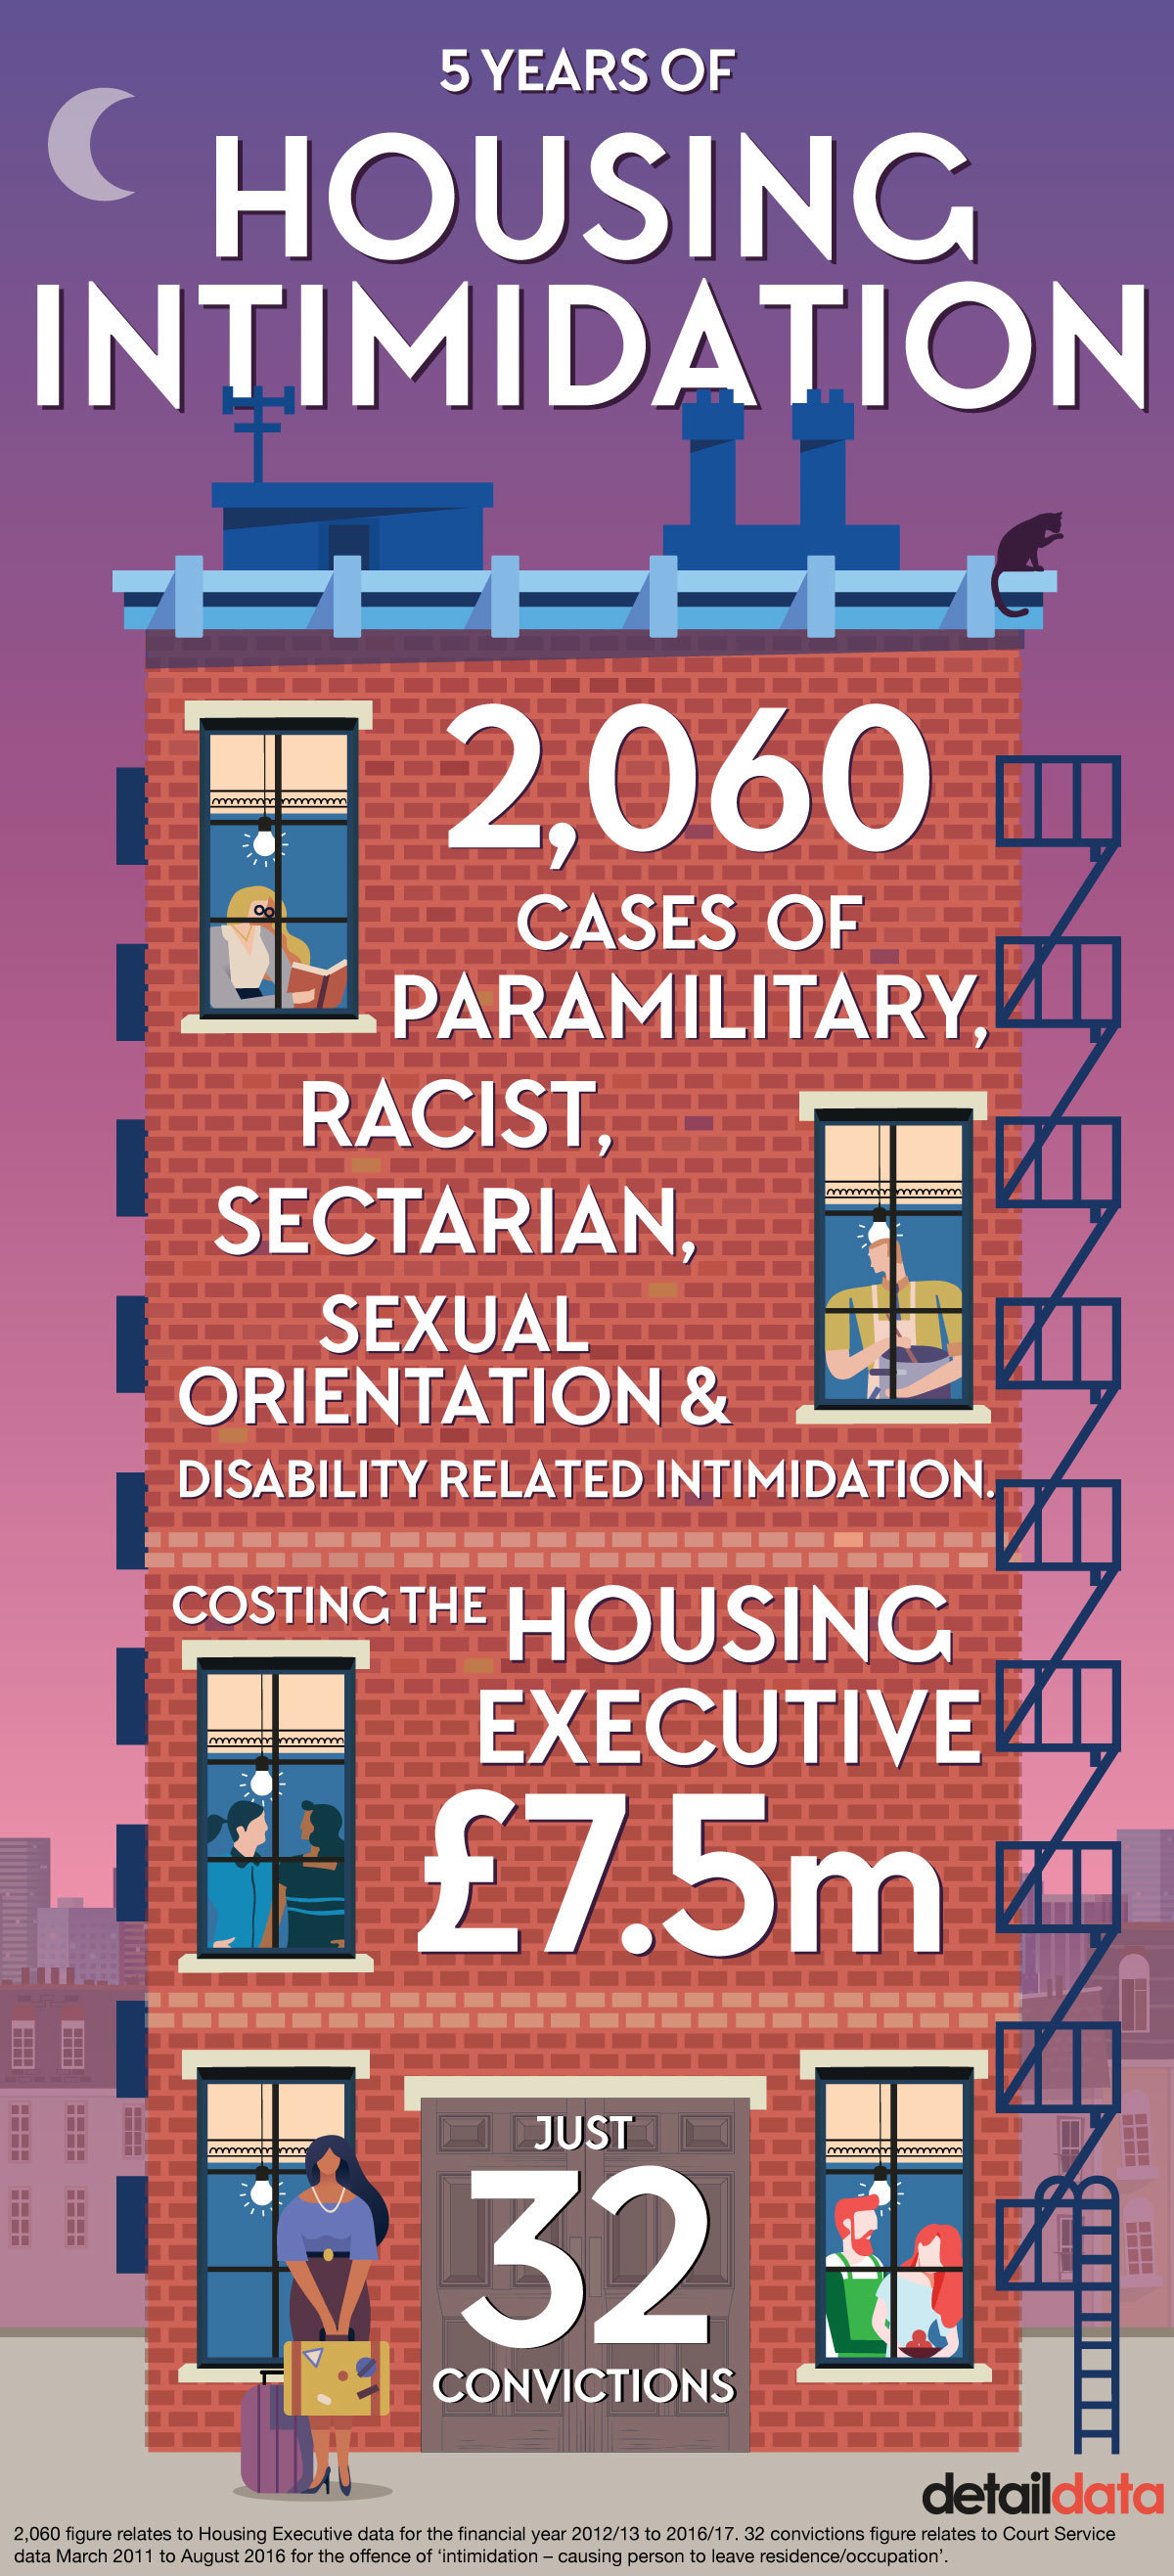 Housing intimidation in Northern Ireland. Infographic by Chris Scott.